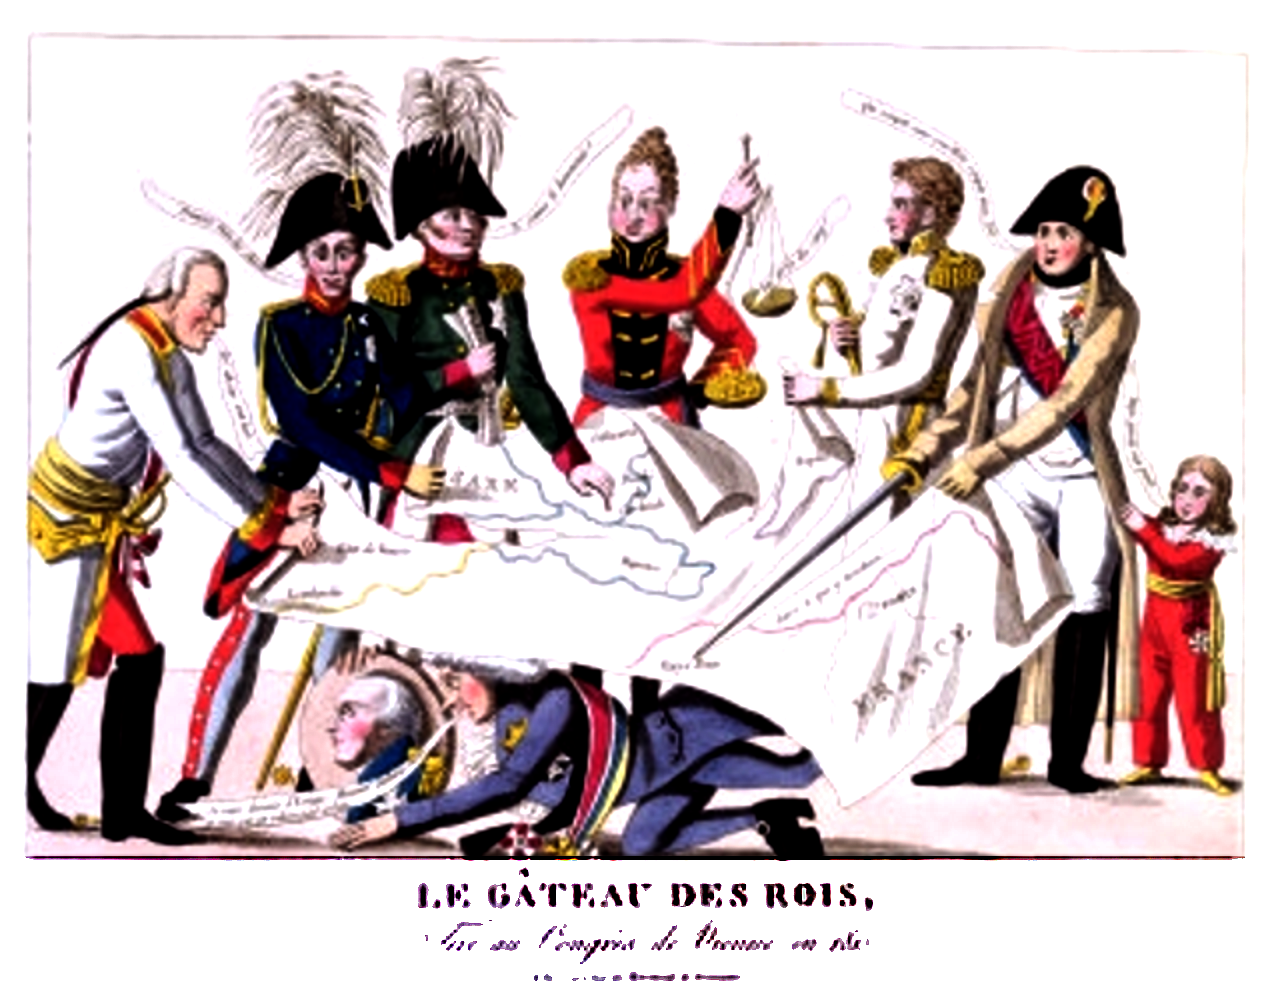 an introduction to the history of bonaparte and how he betrayed the revolution Napolean bonaparte considered to be the savior of the french revolution 518 words | 2 pages important period in the history of france, was the french revolution, covering the years of 1789 to 1799 (french revolution cite.